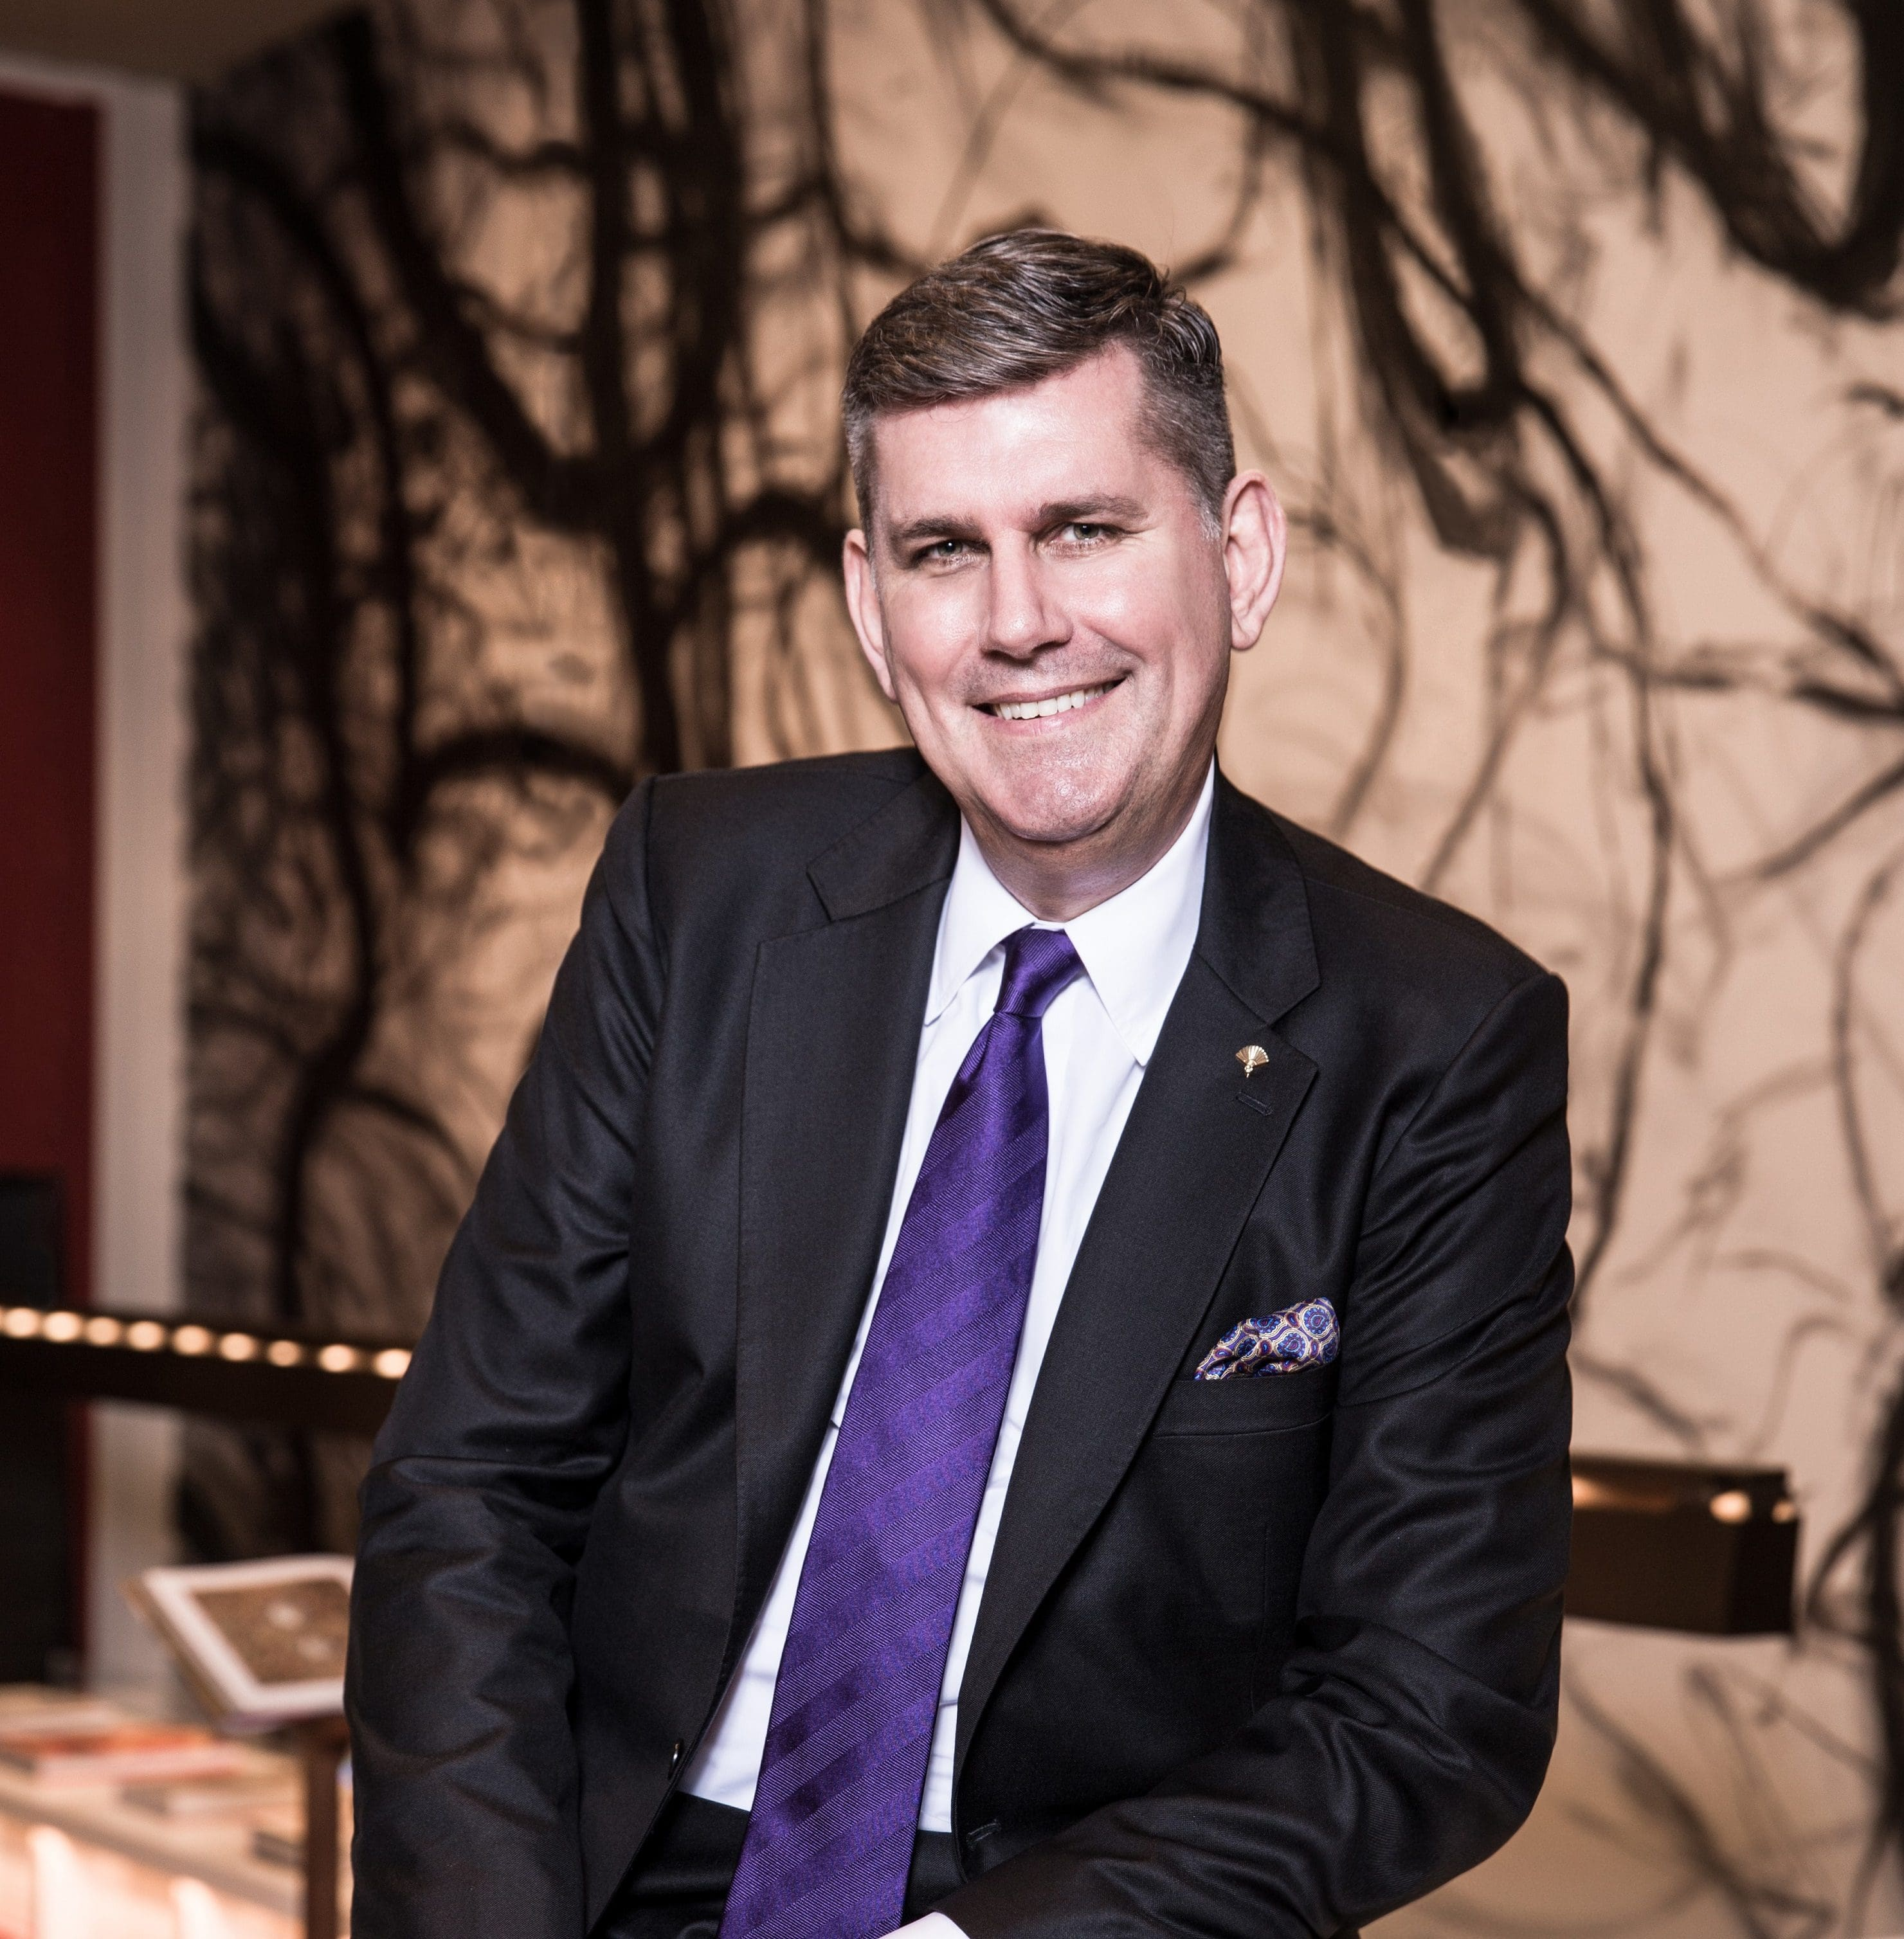 Michael Ziemer, General Manager at Mandarin Oriental, Taipei